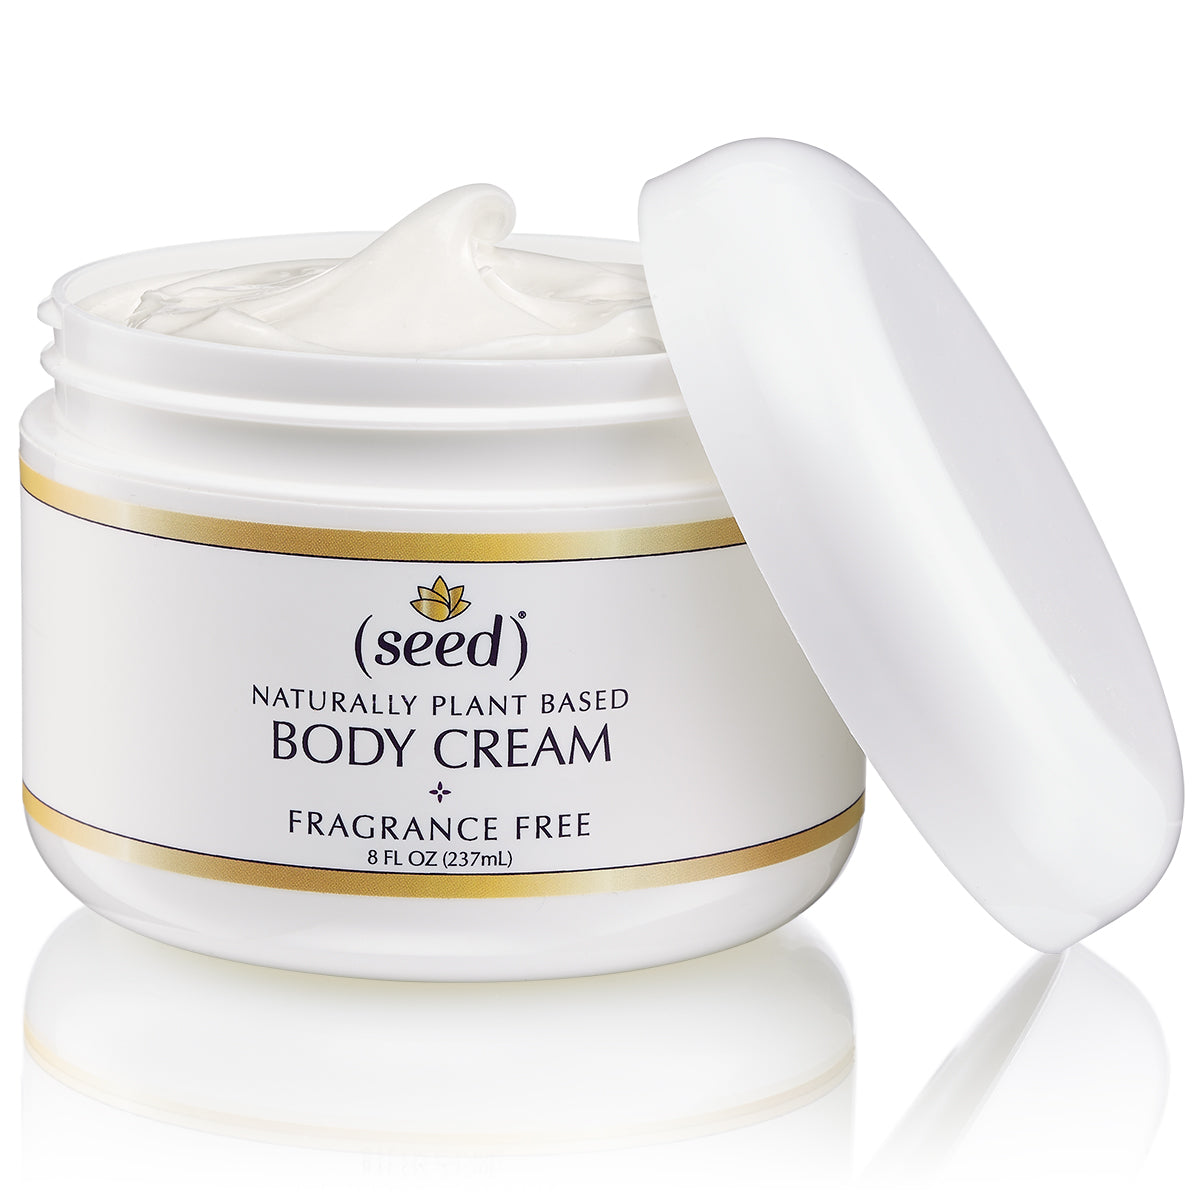 Seed Fragrance Free Body Cream with grape and sunflower seed oils, pure shea butter, and green tea extract